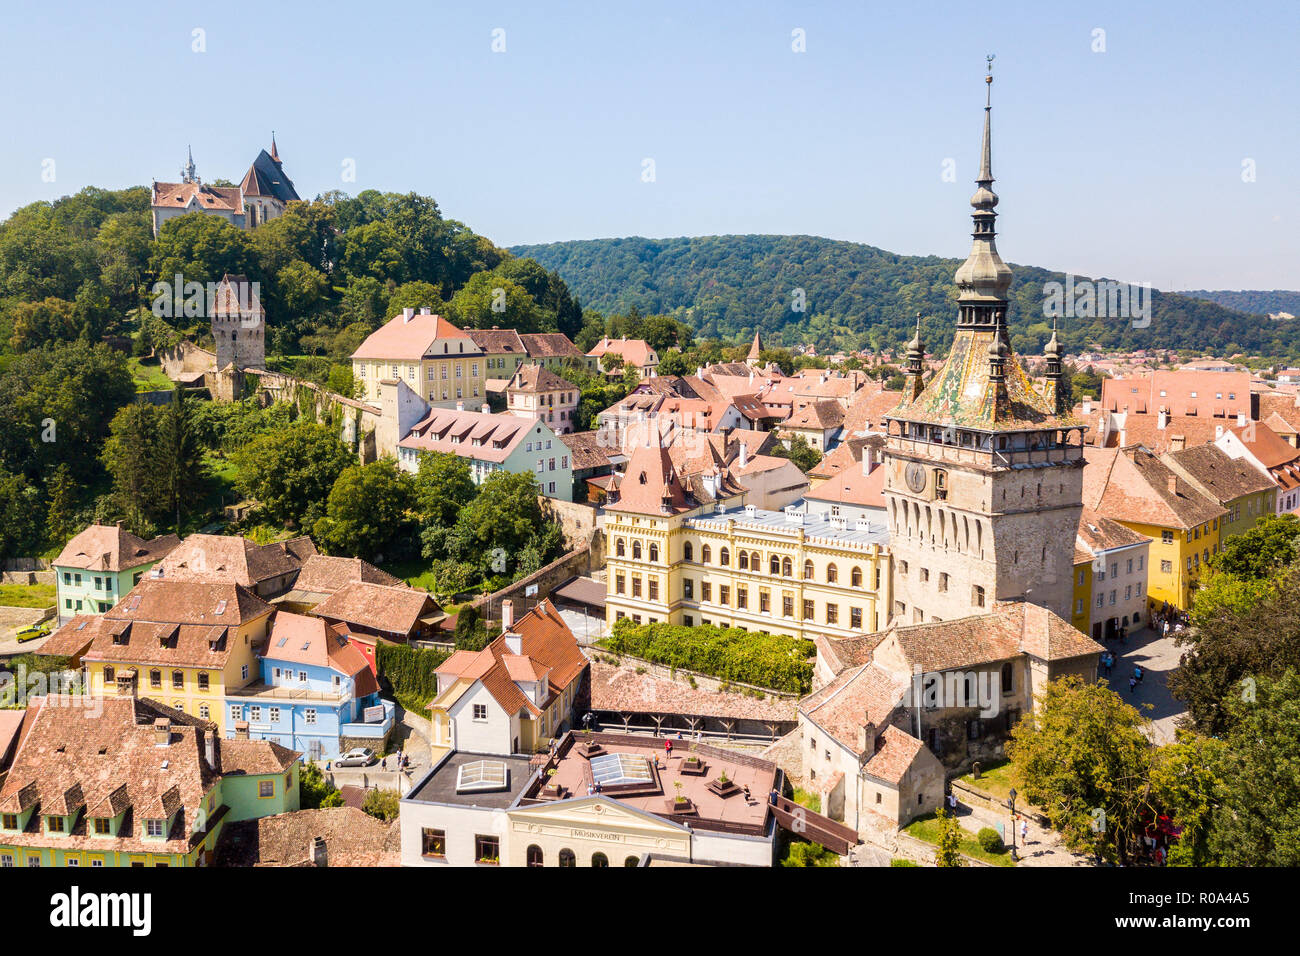 Green hills, spires and red tiled roofs of Walled old town of Sighisoara (Sighishoara), Mures, Transylvania, Romania. The Clock Tower of Sighișoara. - Stock Image